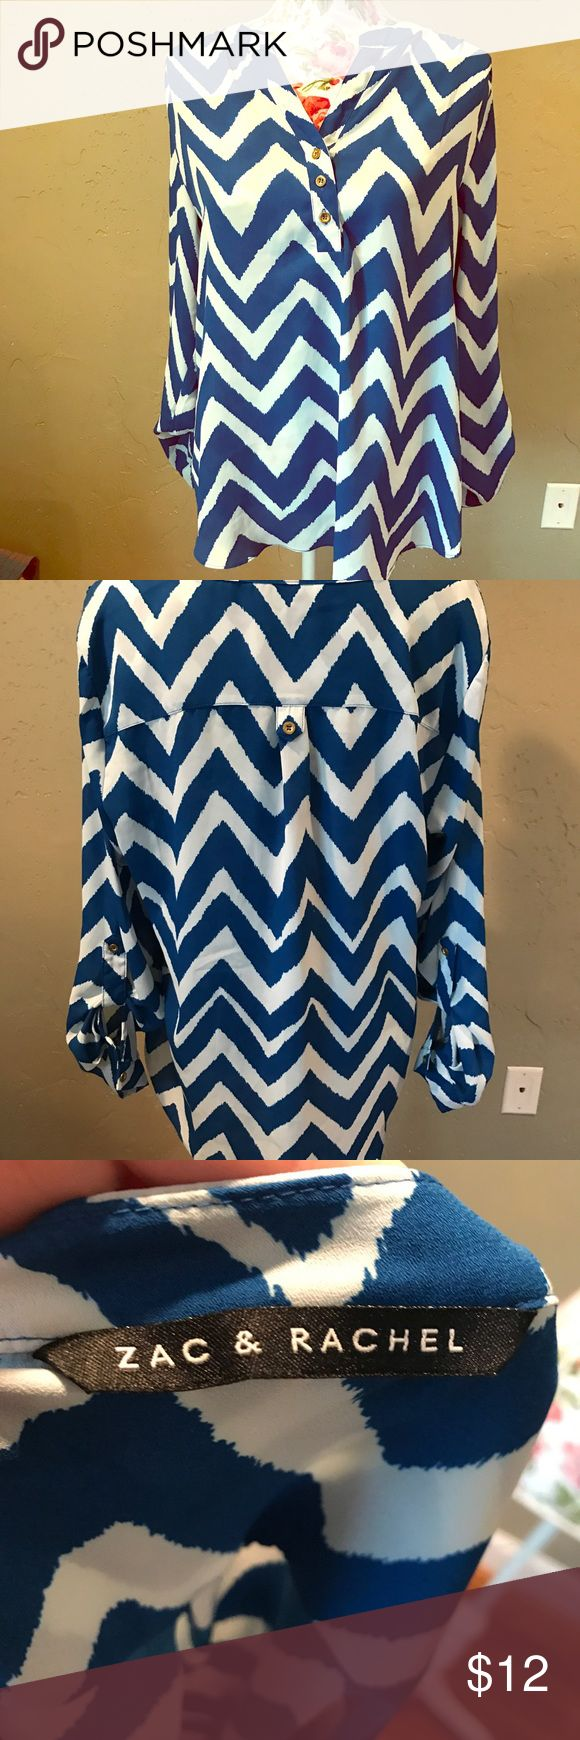 Chevron blouse Very cute and flowy sleeves button up Zac & Rachel Tops Blouses